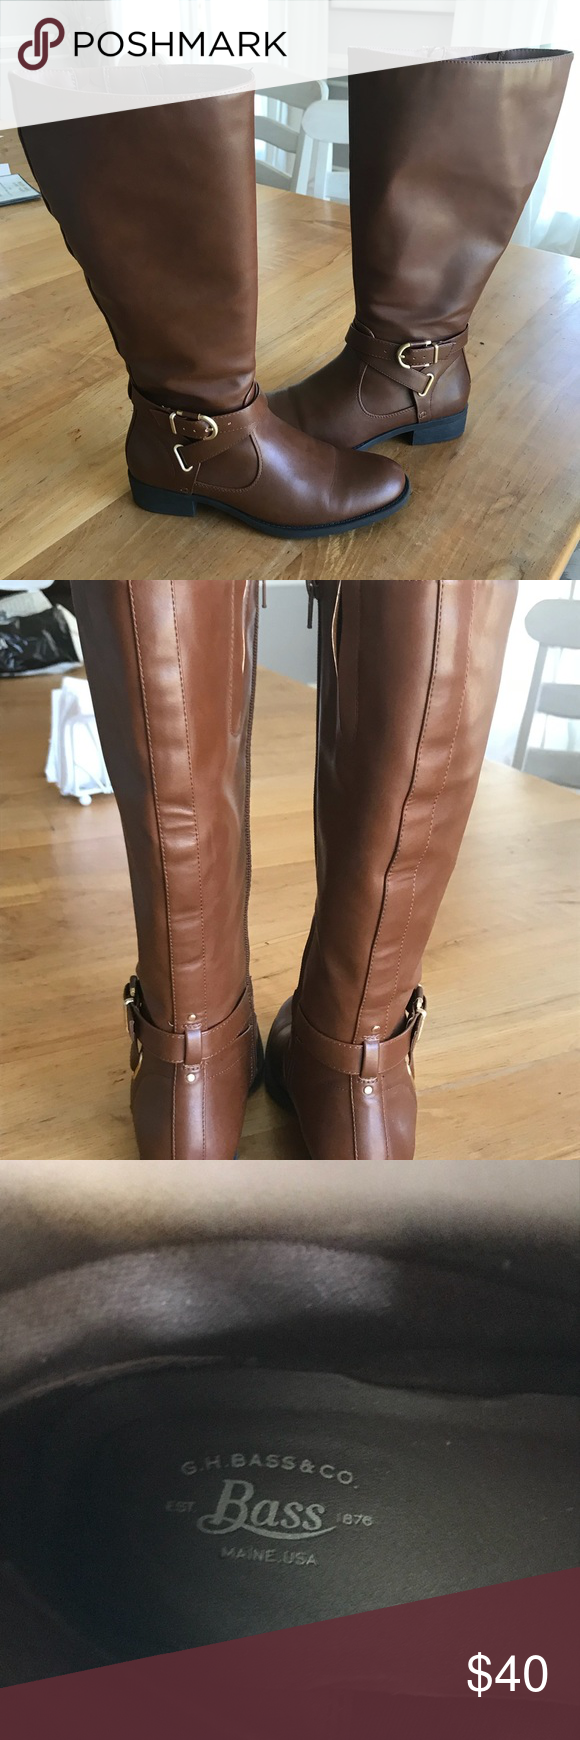 a4c5290f2ef2 G.H. Bass wide-calf riding boots Size 8 Very comfortable. Needed them  during my pregnancy. Excellent condition. Have a nice bit of give in the  calf.